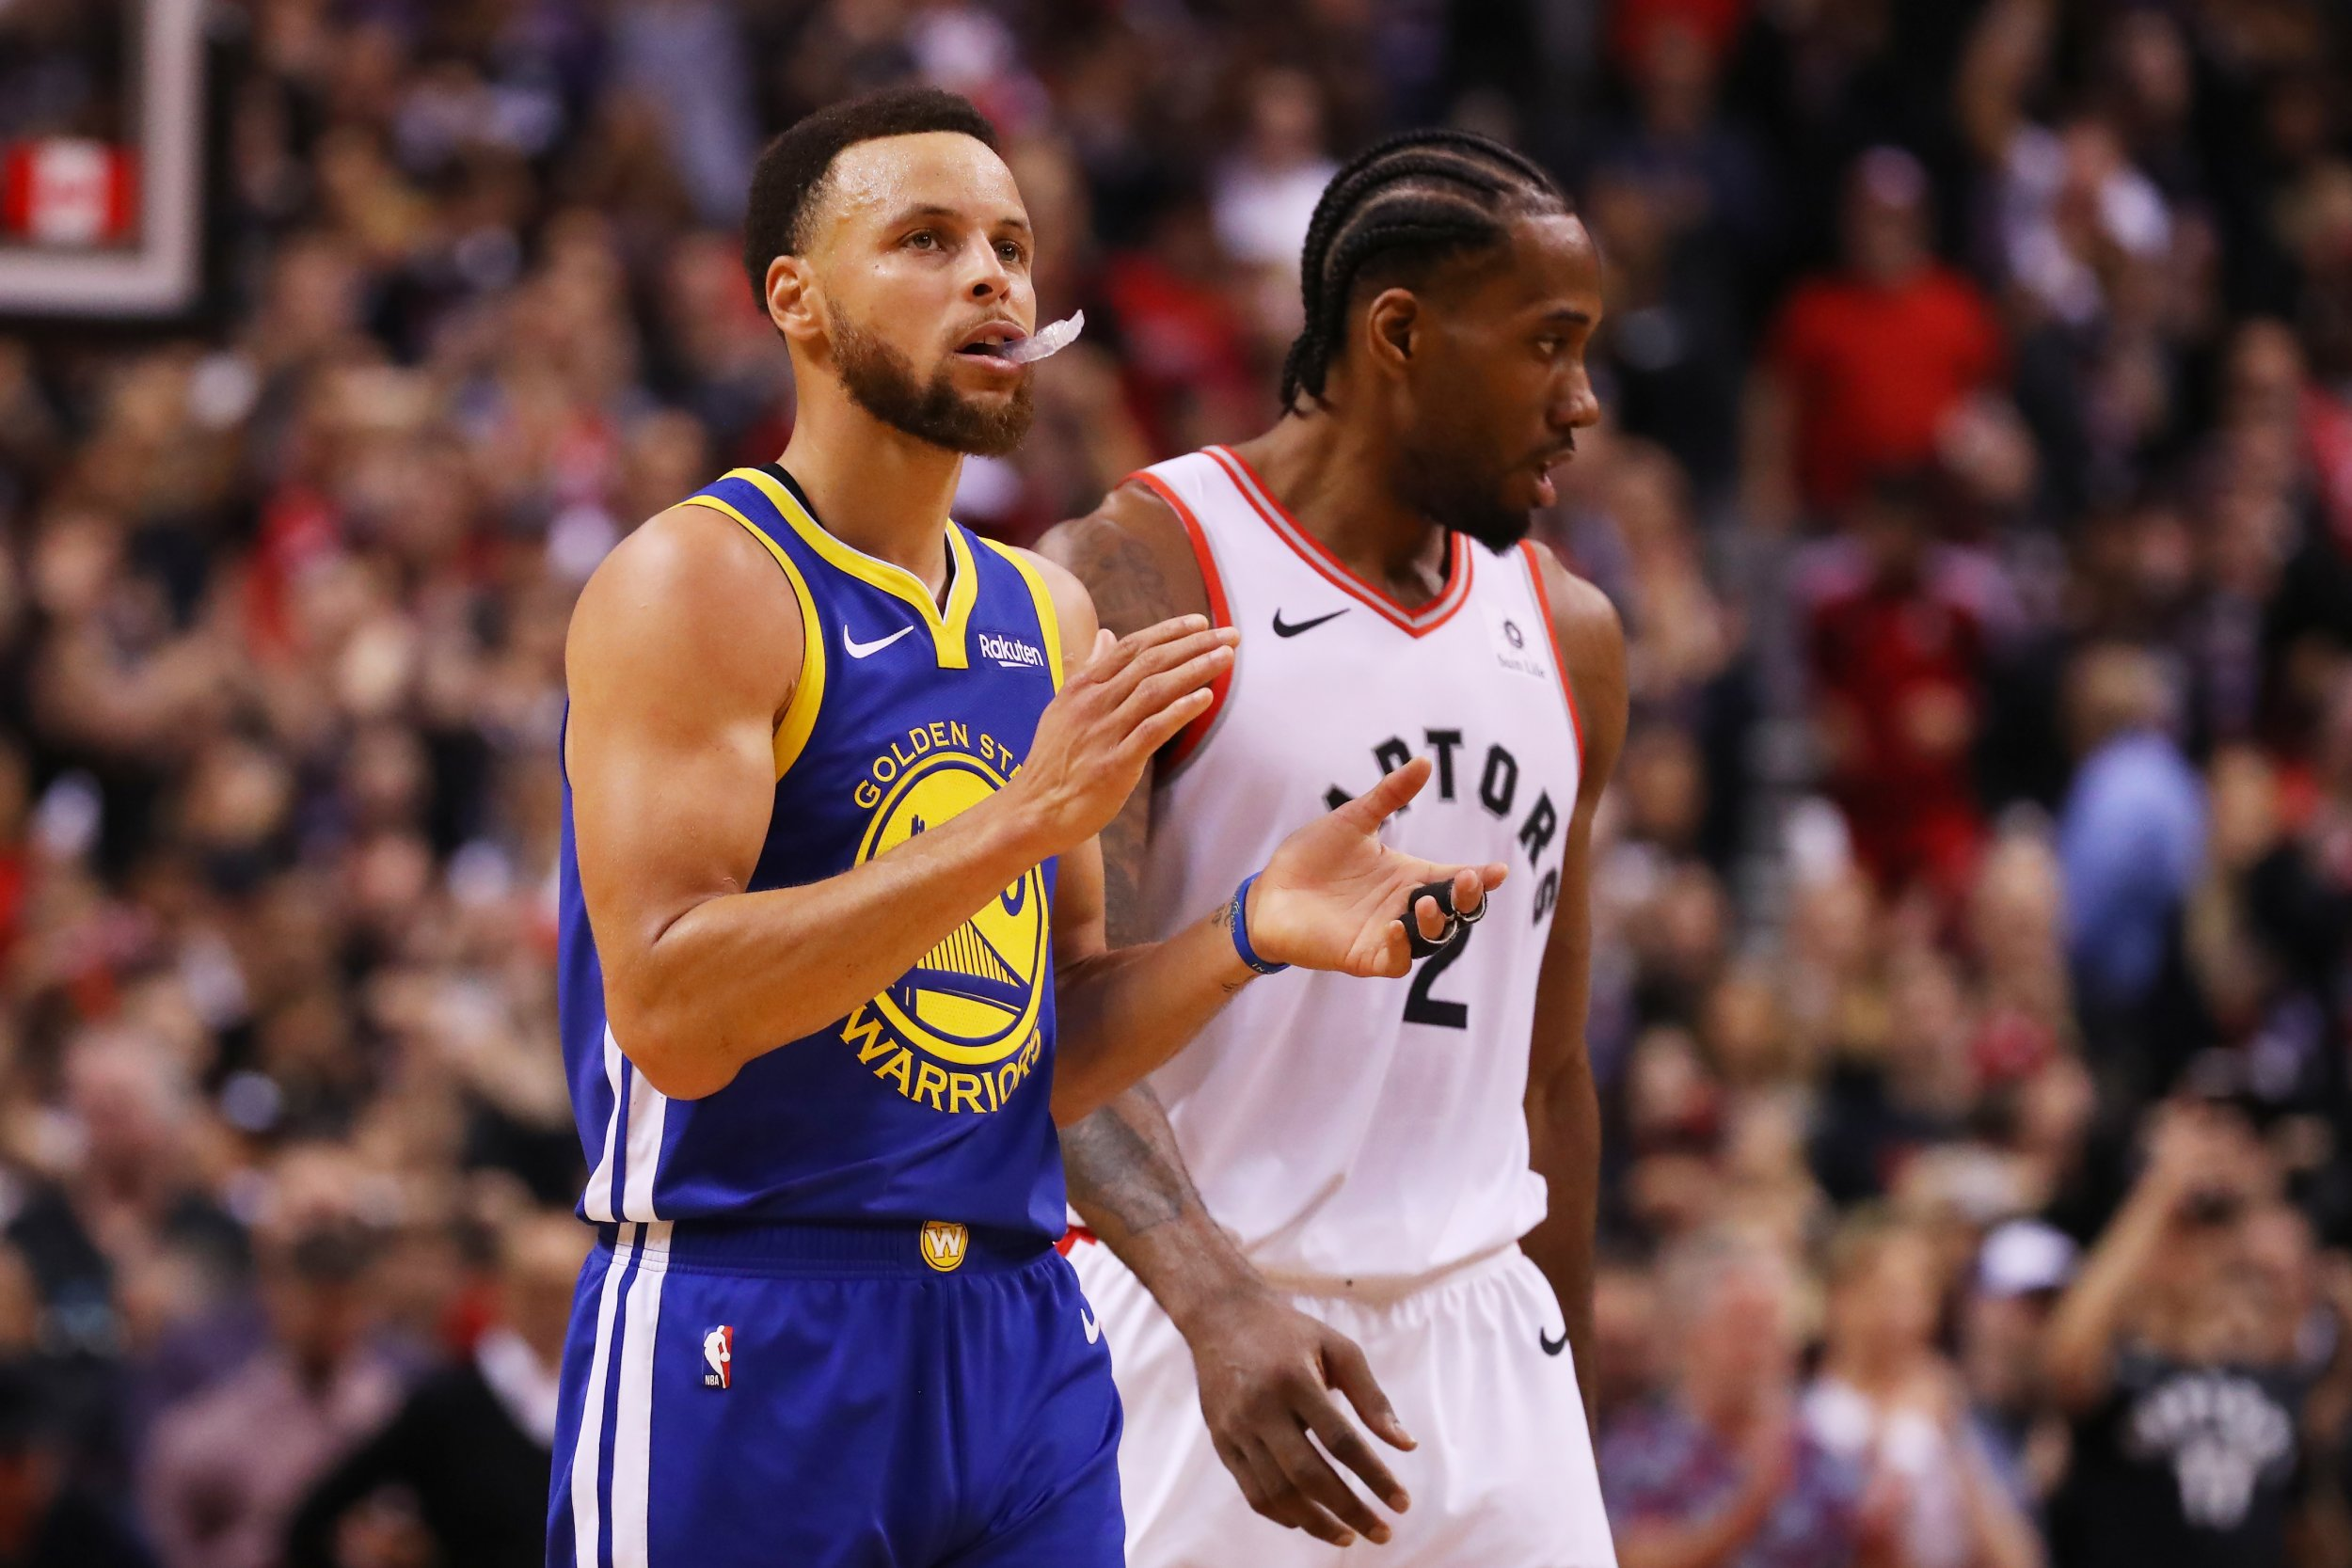 Nba Finals Schedule Tonight Warriors Vs Raptors Game 2 Live Stream Tv Channel Score And Latest Odds